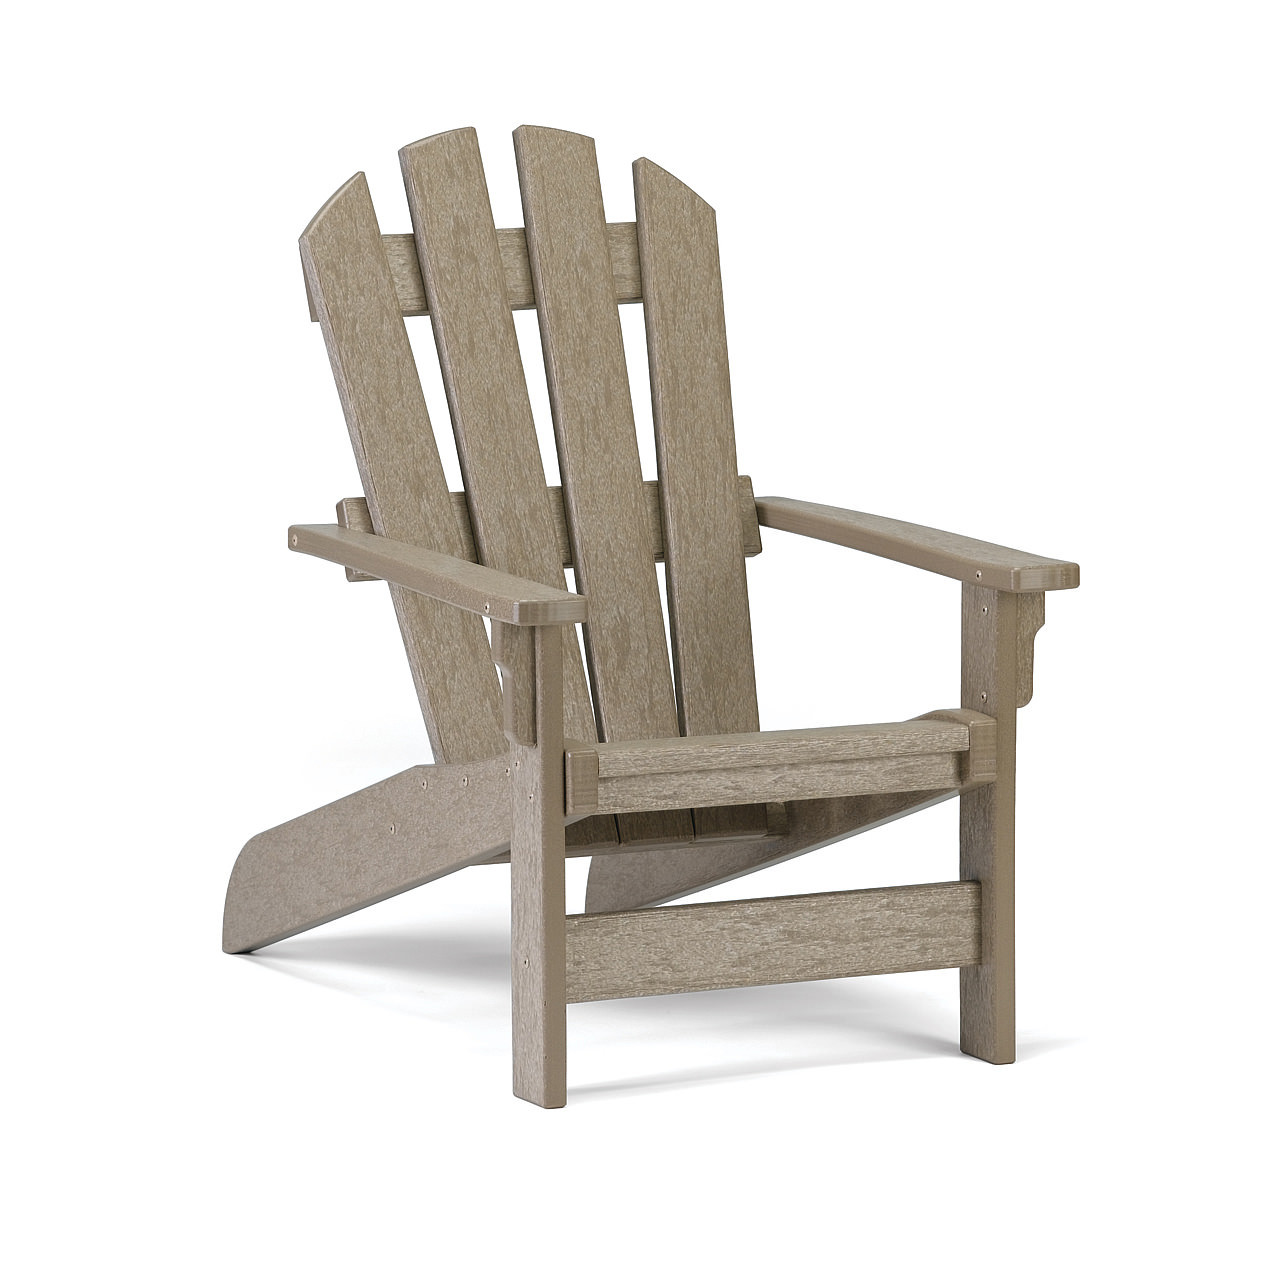 Breezesta™ Kidz Adirondack Chair